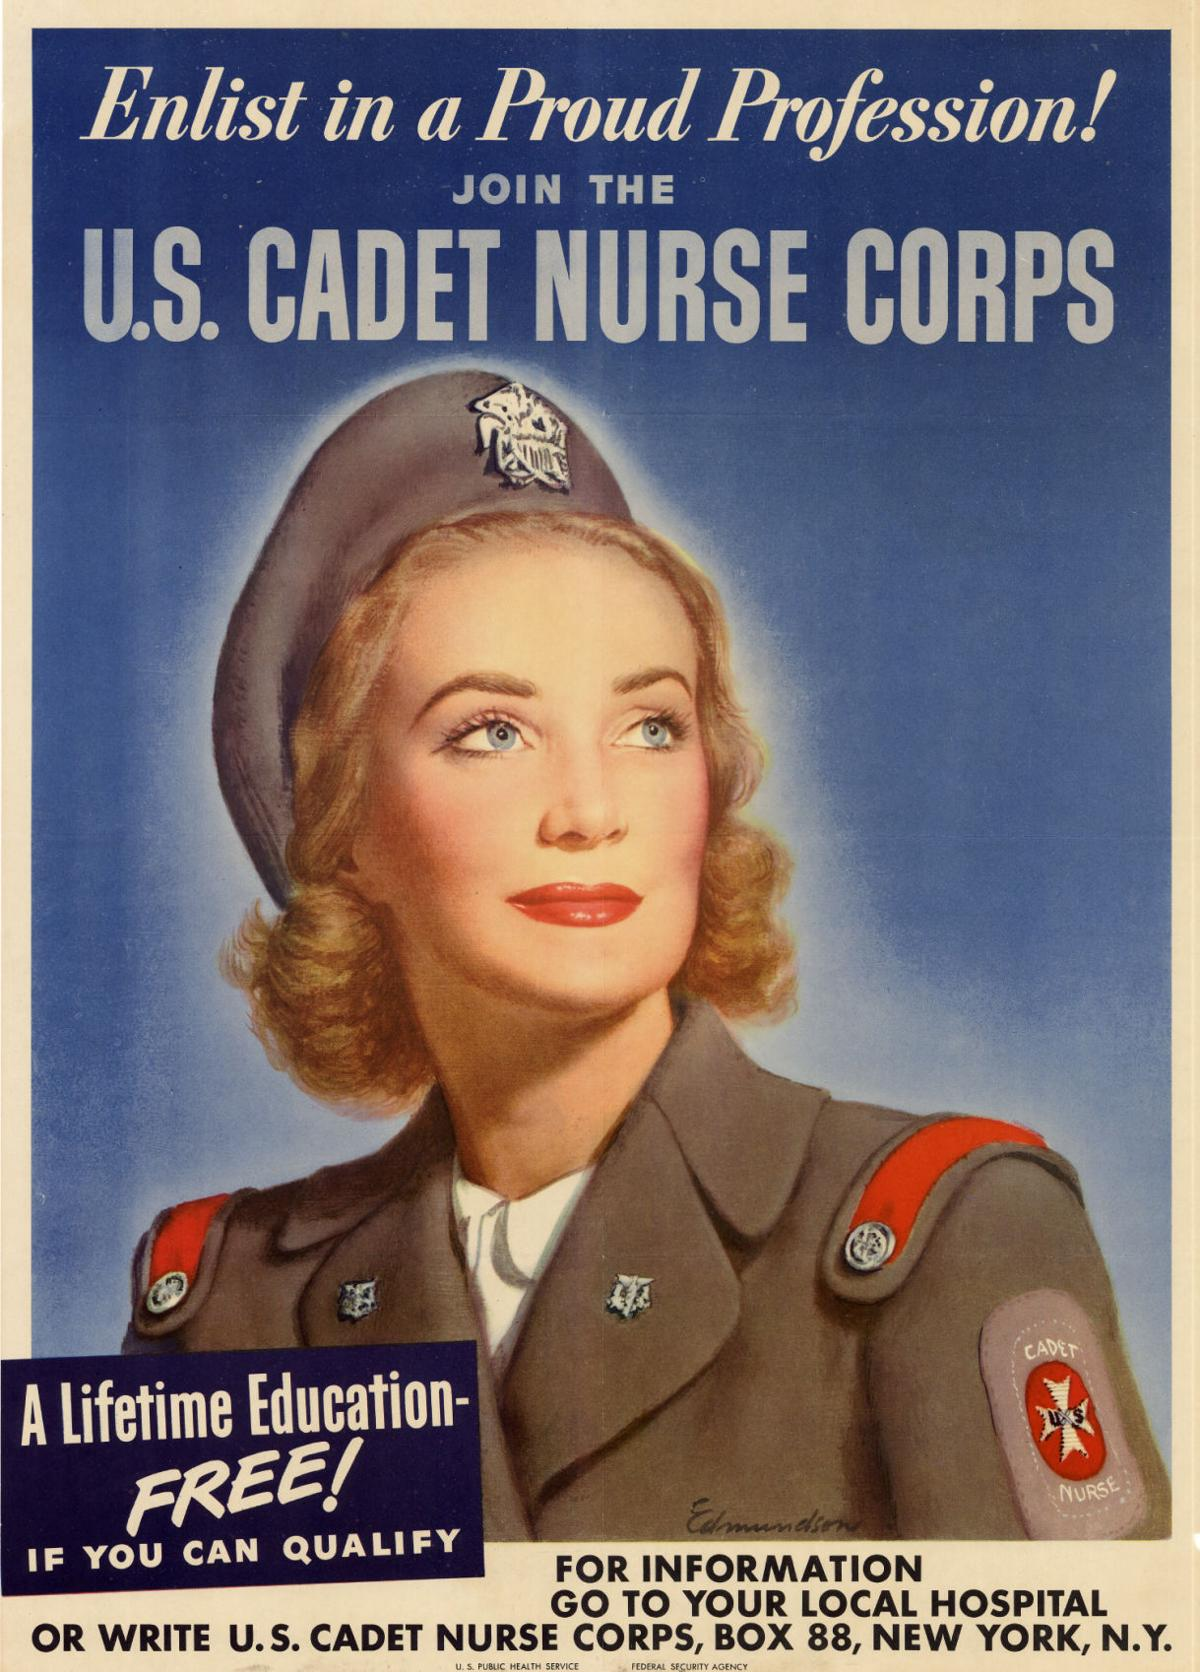 Enlist_in_a_Proud_Profession-Join_the_U.S._Cadet_Nurse_Corps_(version_one).jpg